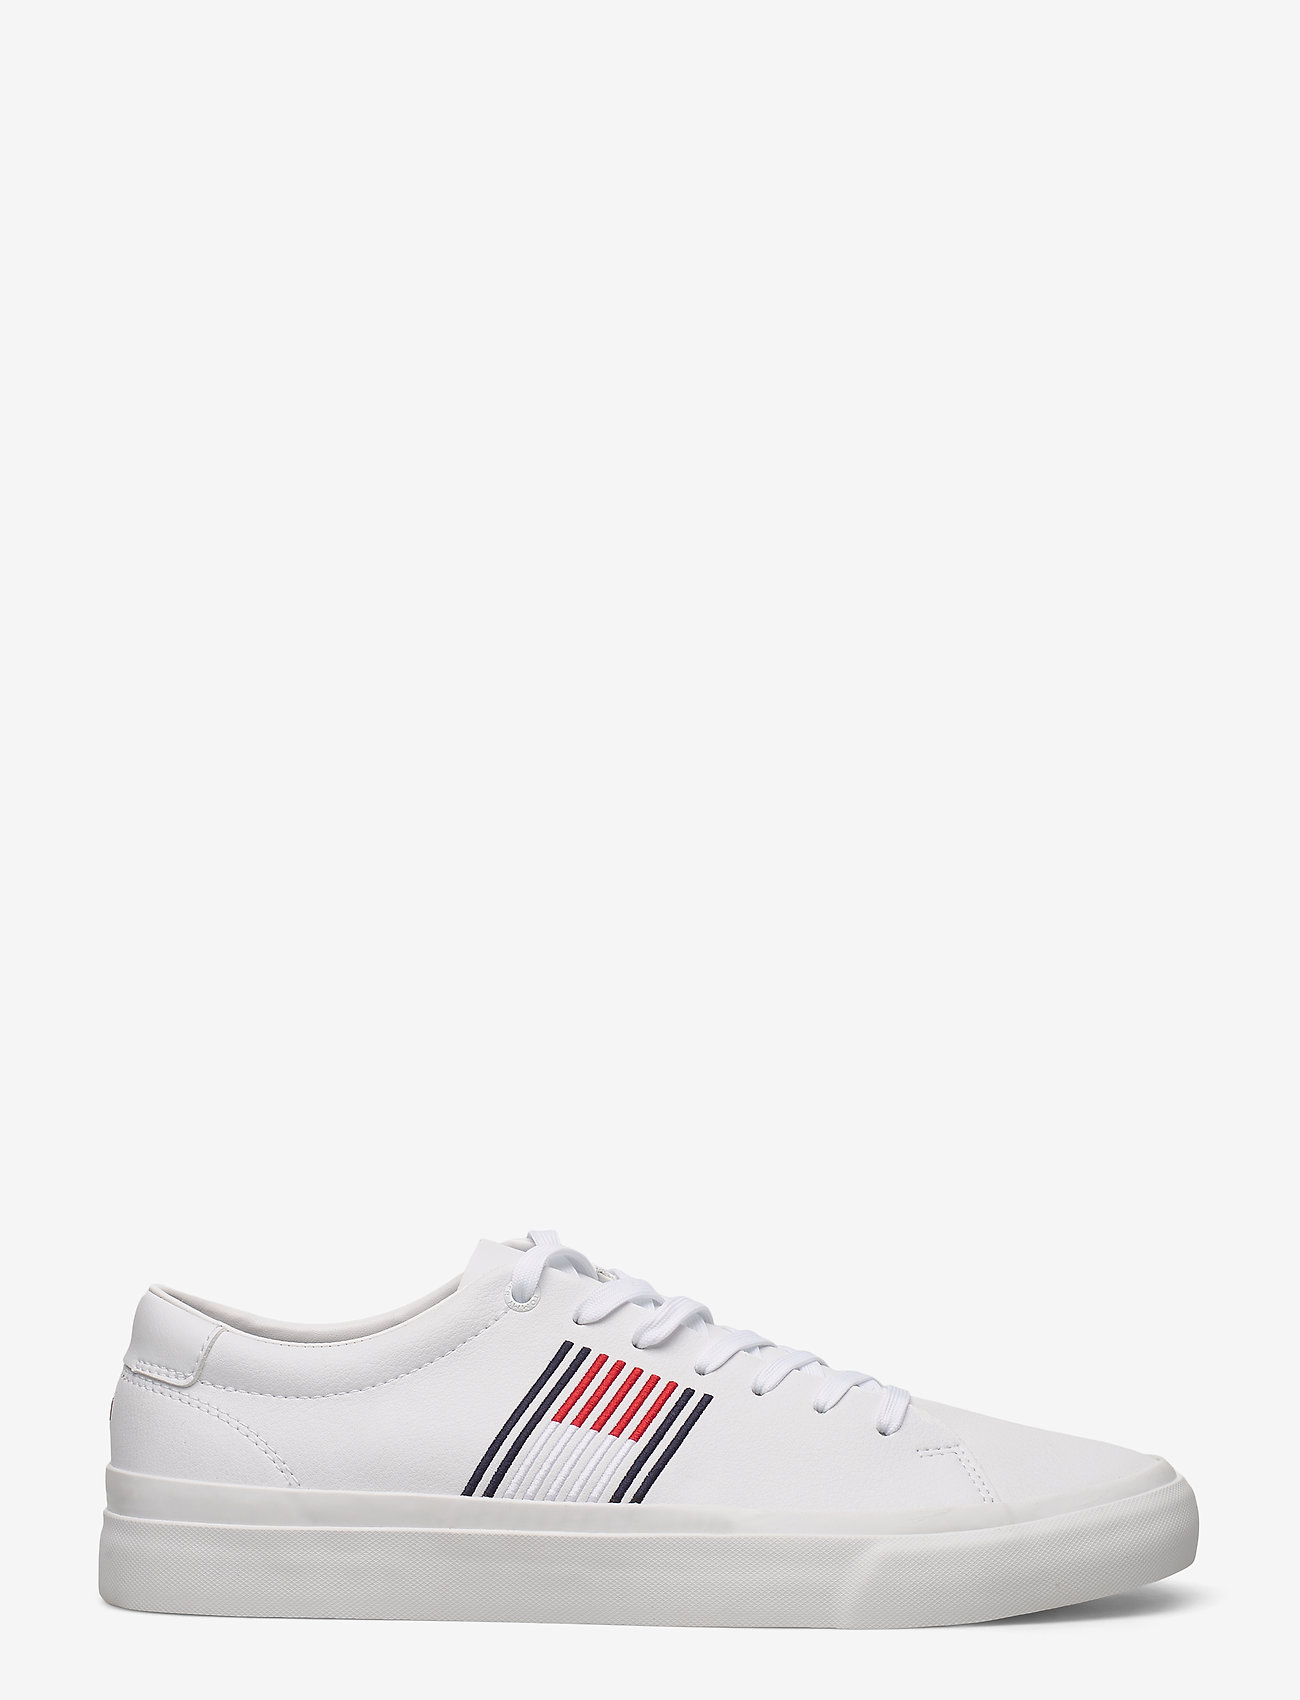 Tommy Hilfiger - CORPORATE LEATHER SNEAKER - low tops - white - 1